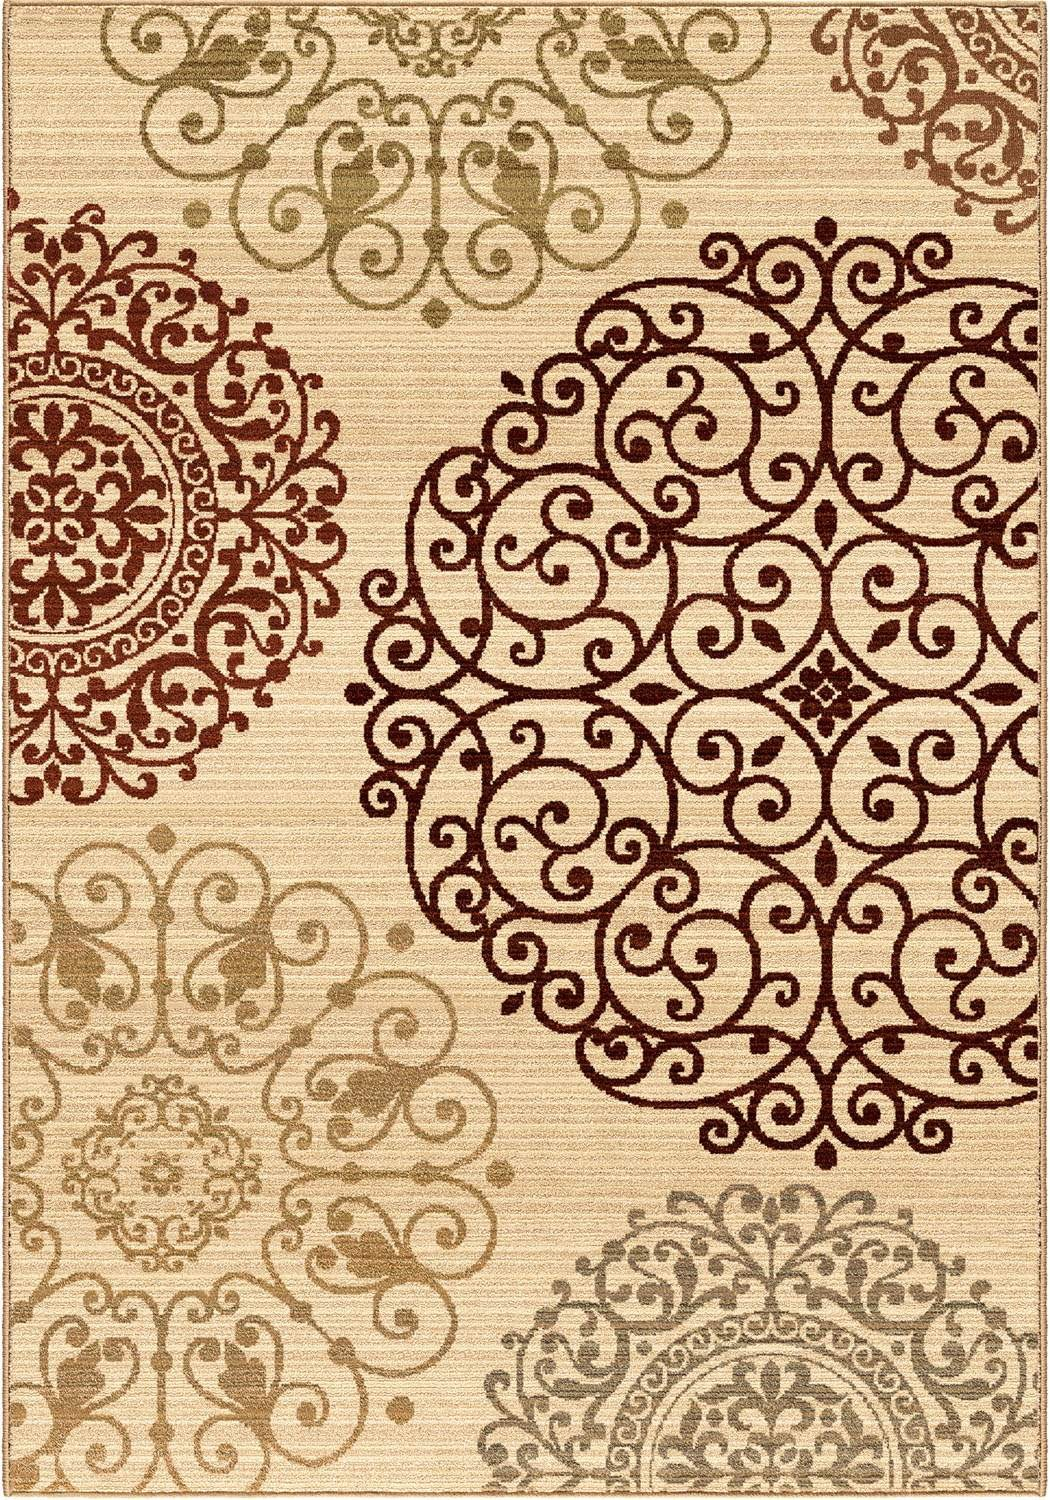 Anthology 1429 Eton White ST 4 rug by orian rugs for floor decor ideas